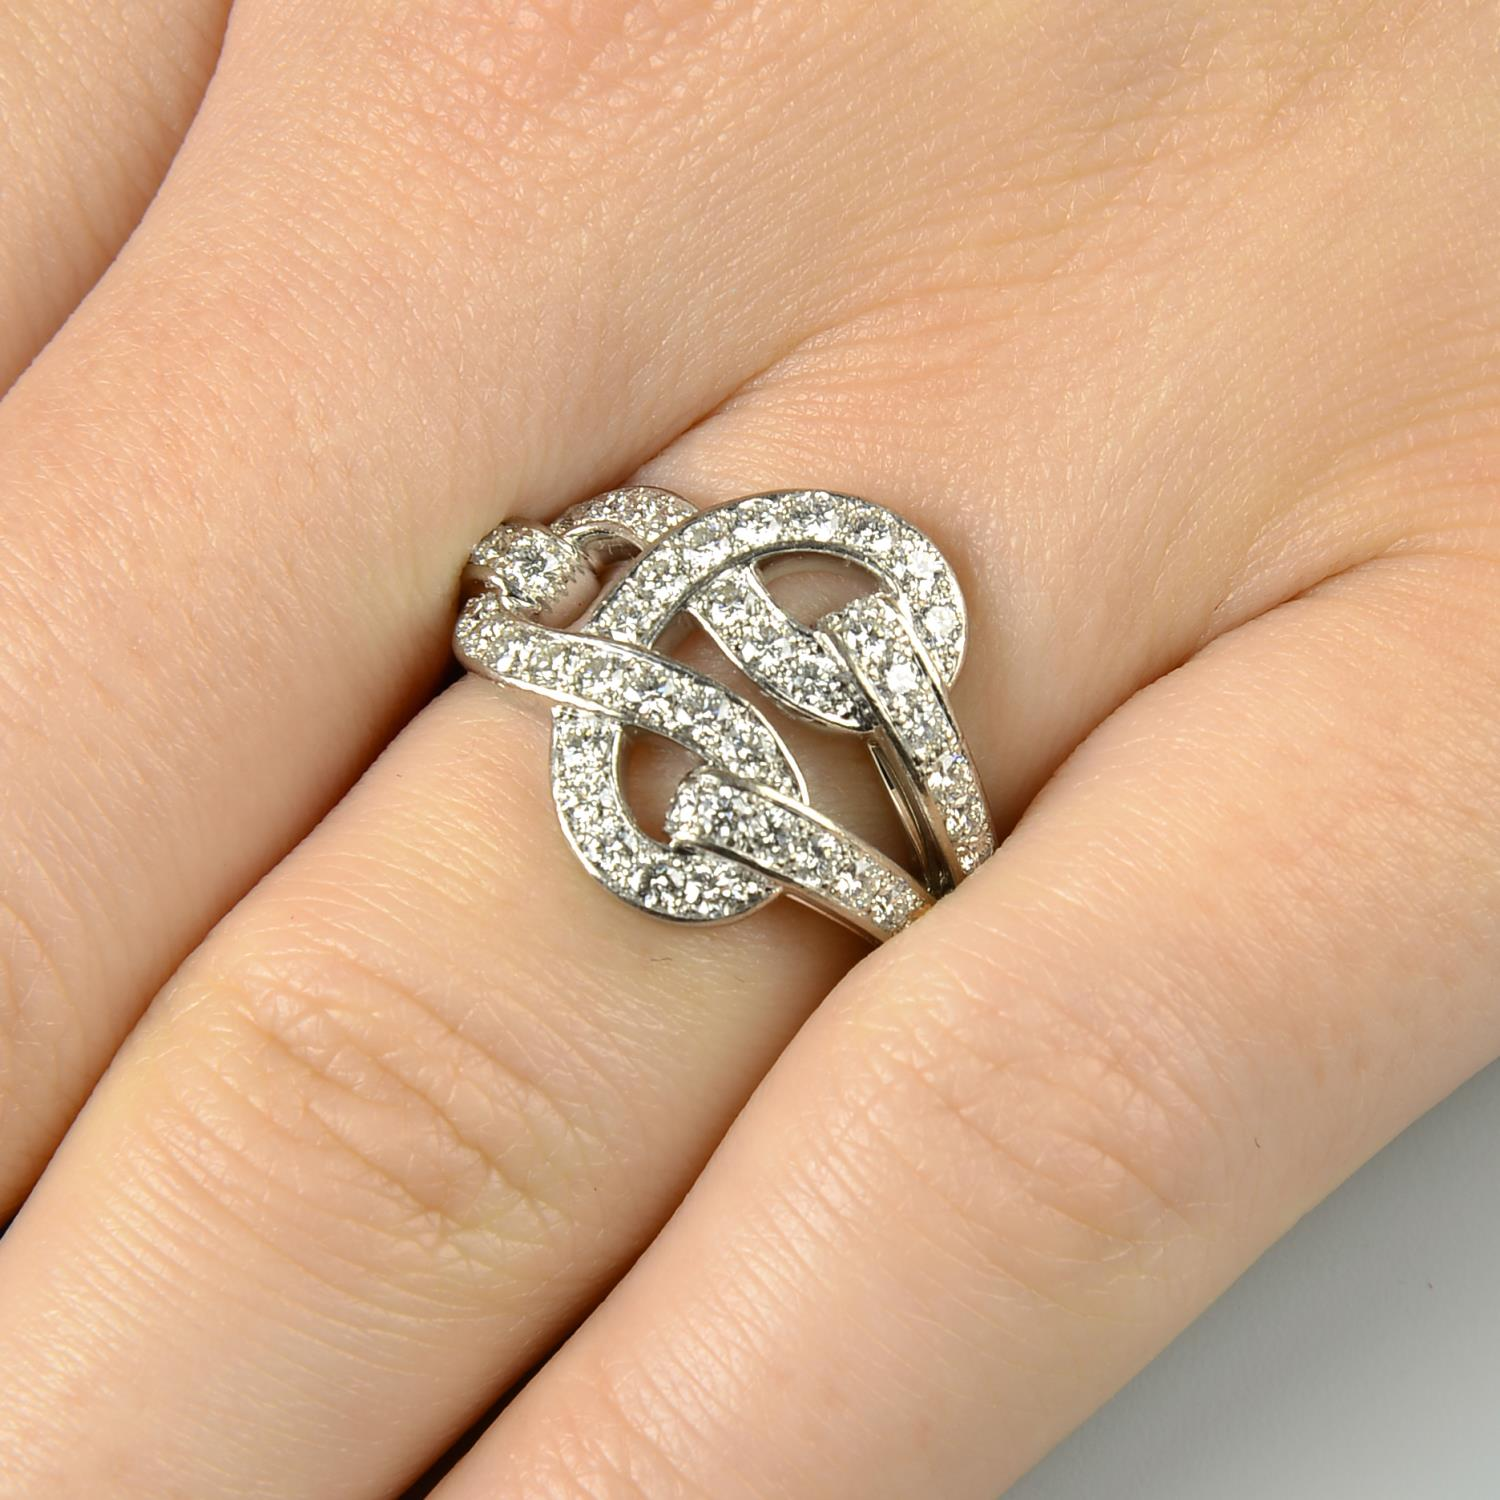 Lot 142 - An 18ct gold diamond 'Agrafe' ring,